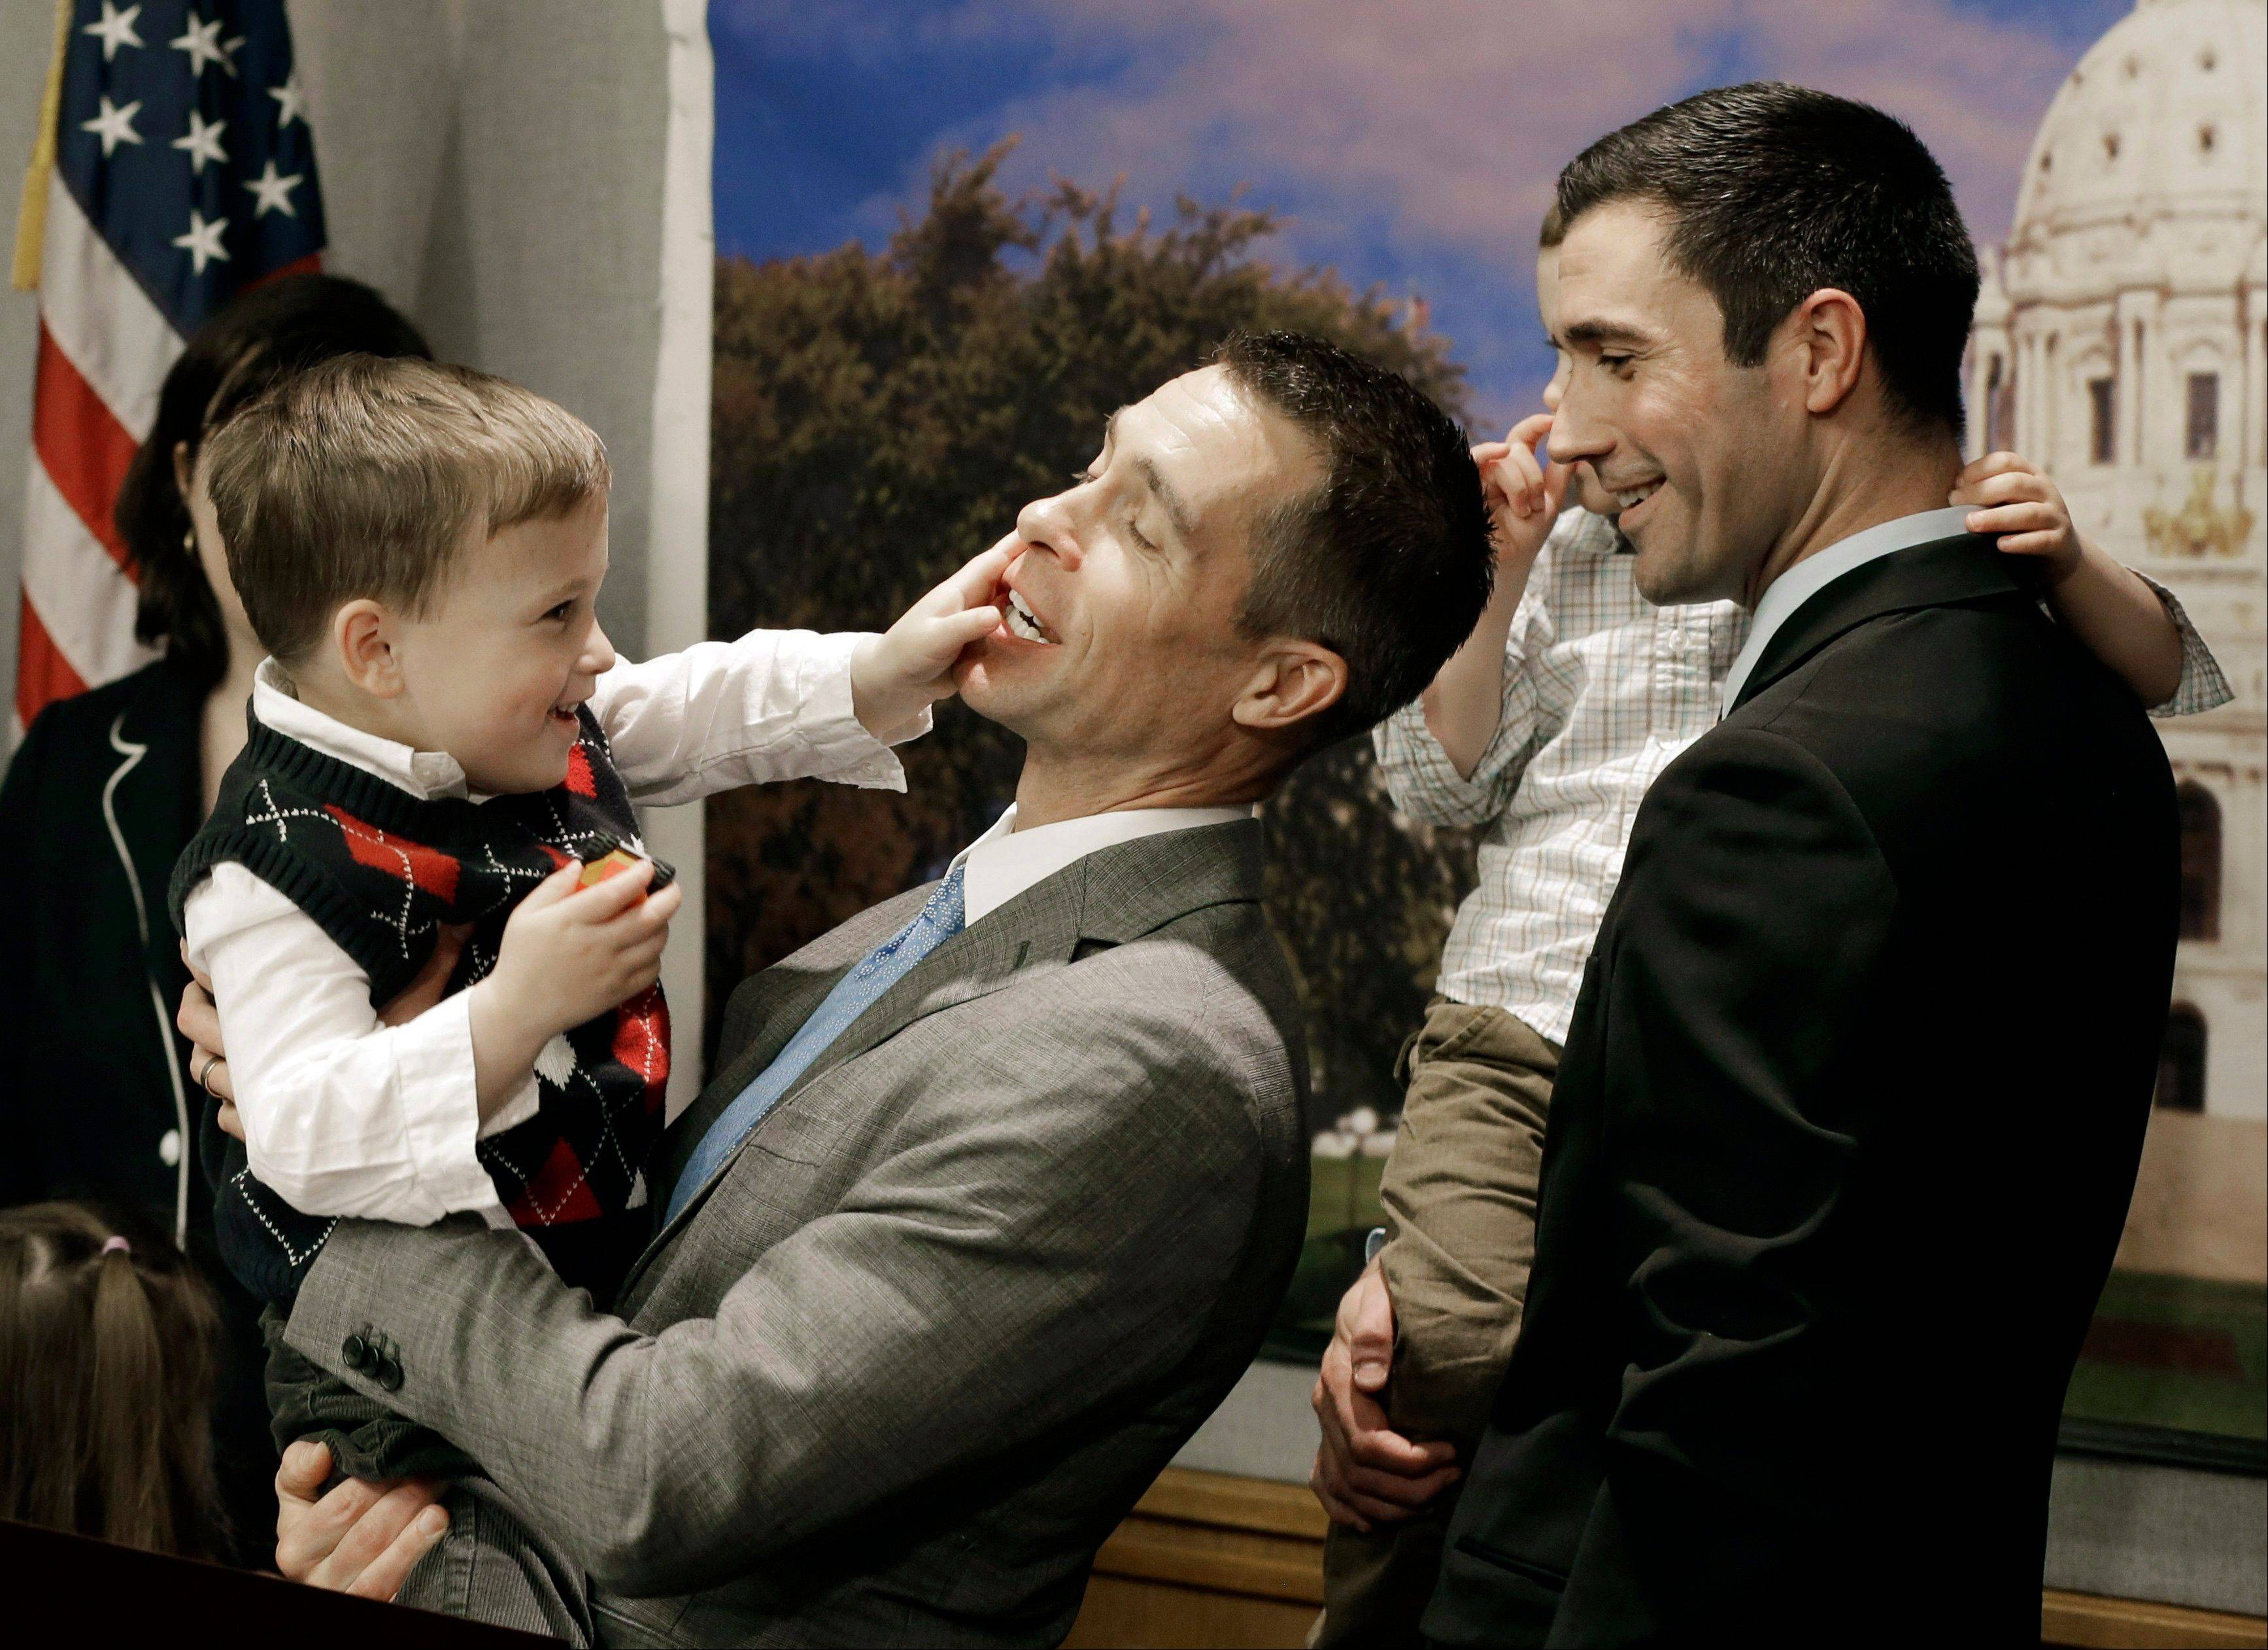 Dr. Paul Melchert, left, gets interrupted Wednesday by his son, Emmett, as